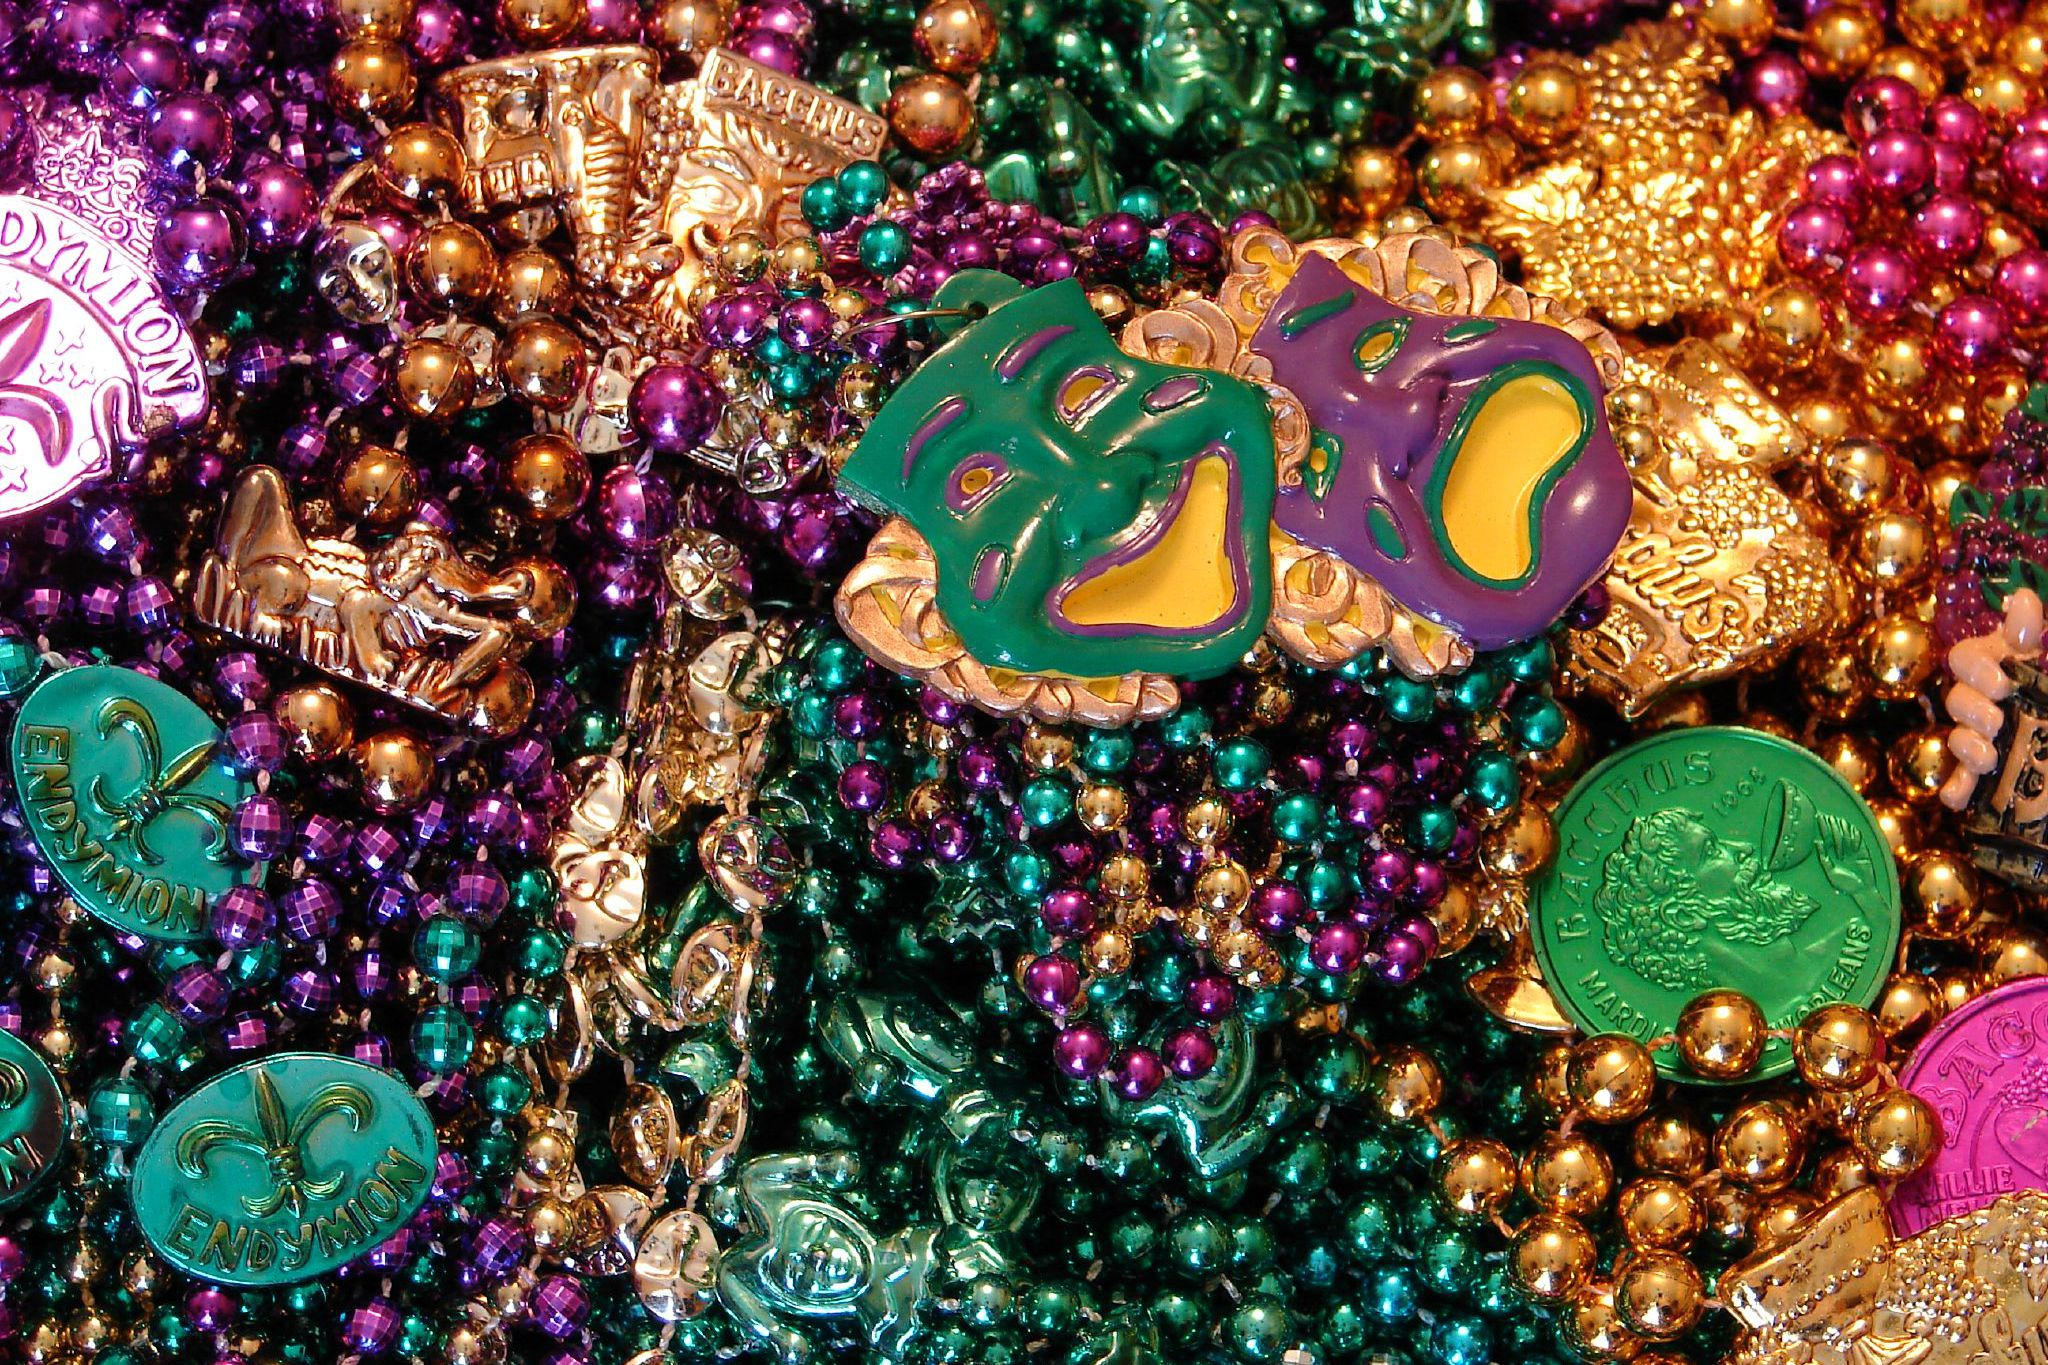 New orleans style decorating get the big easy look amipublicfo Images